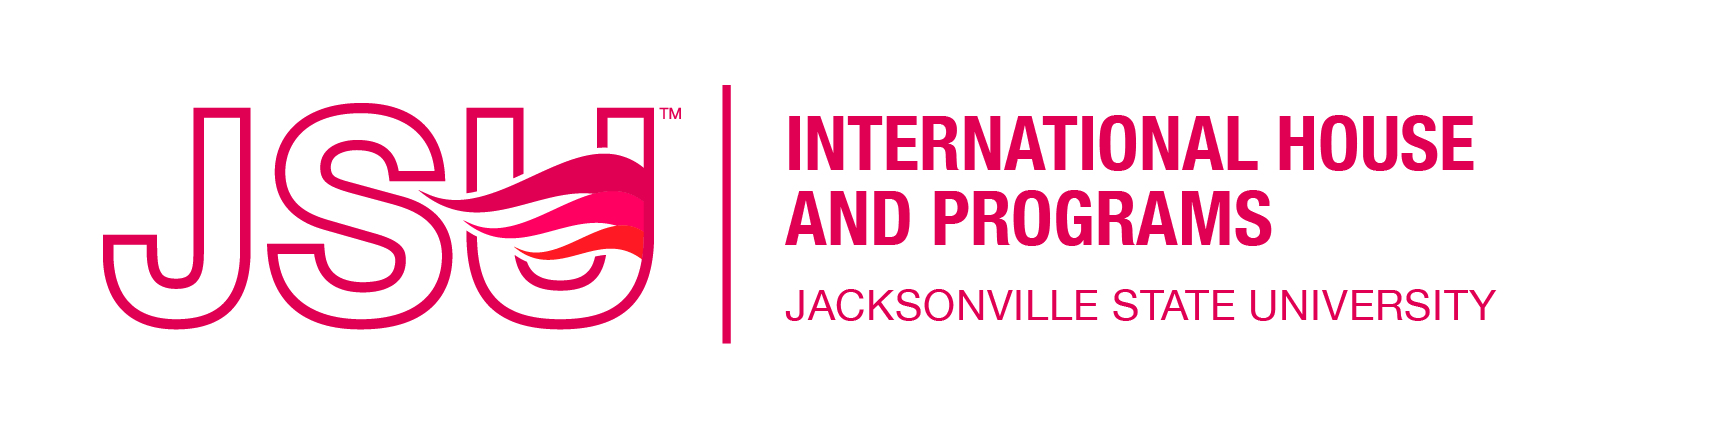 International House & Programs - Jacksonville State University